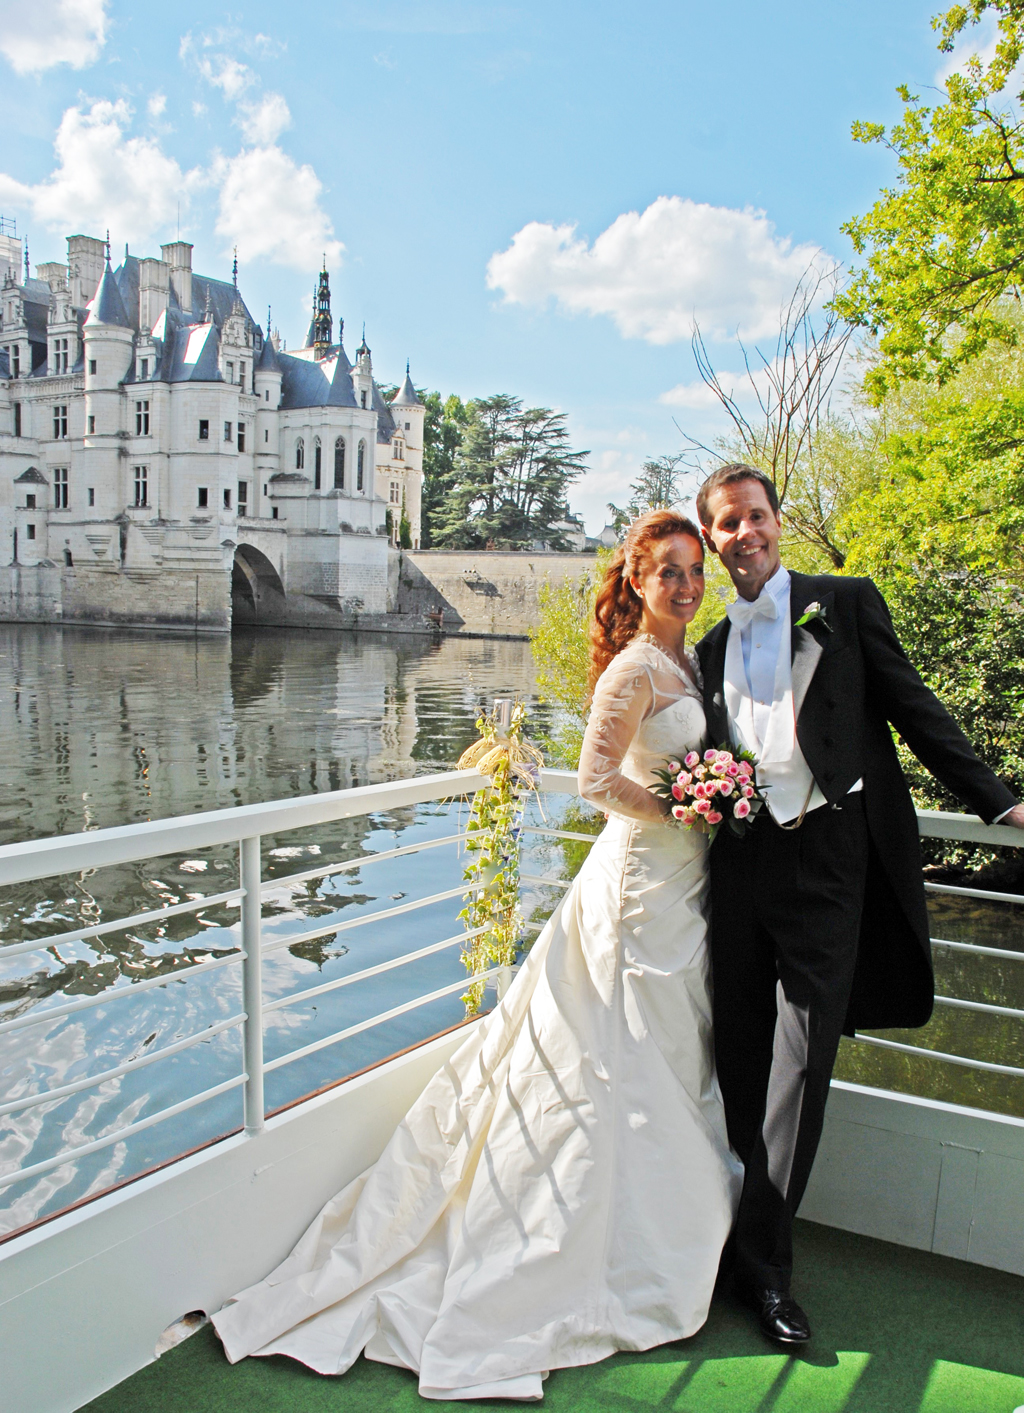 Castle-Key-Destination-Wedding-Specialist-Loire-Valley-France